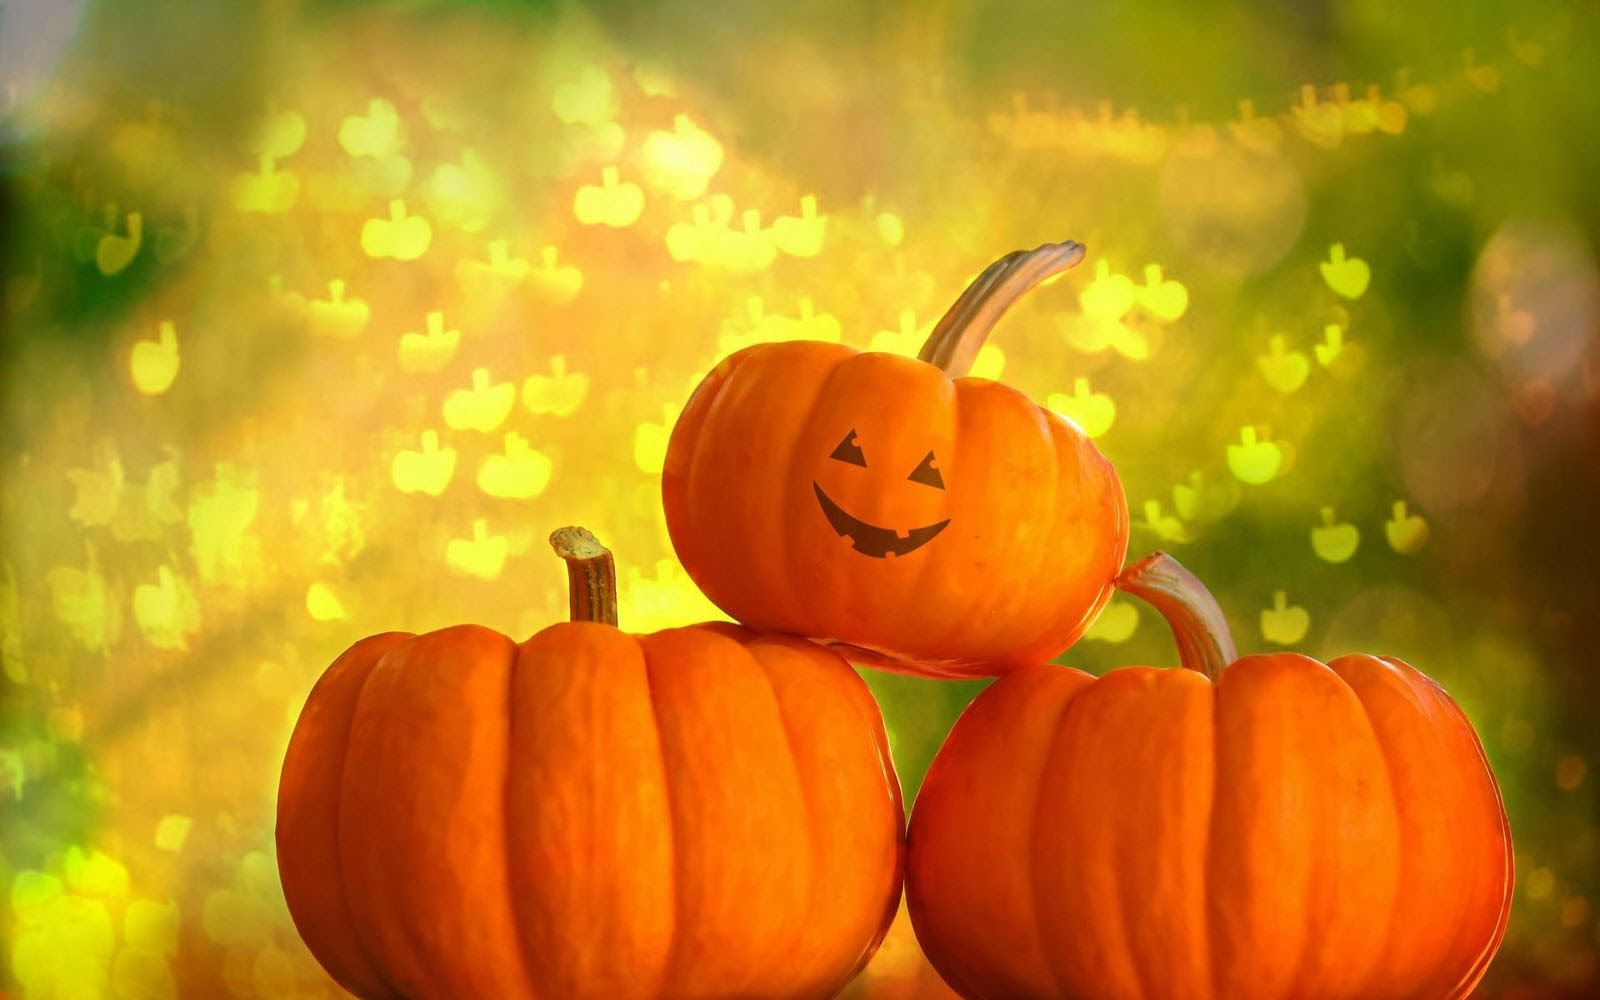 Beautiful Wallpapers: Pumpkin Wallpapers · Halloween PumpkinsHalloween BannerHappy ...